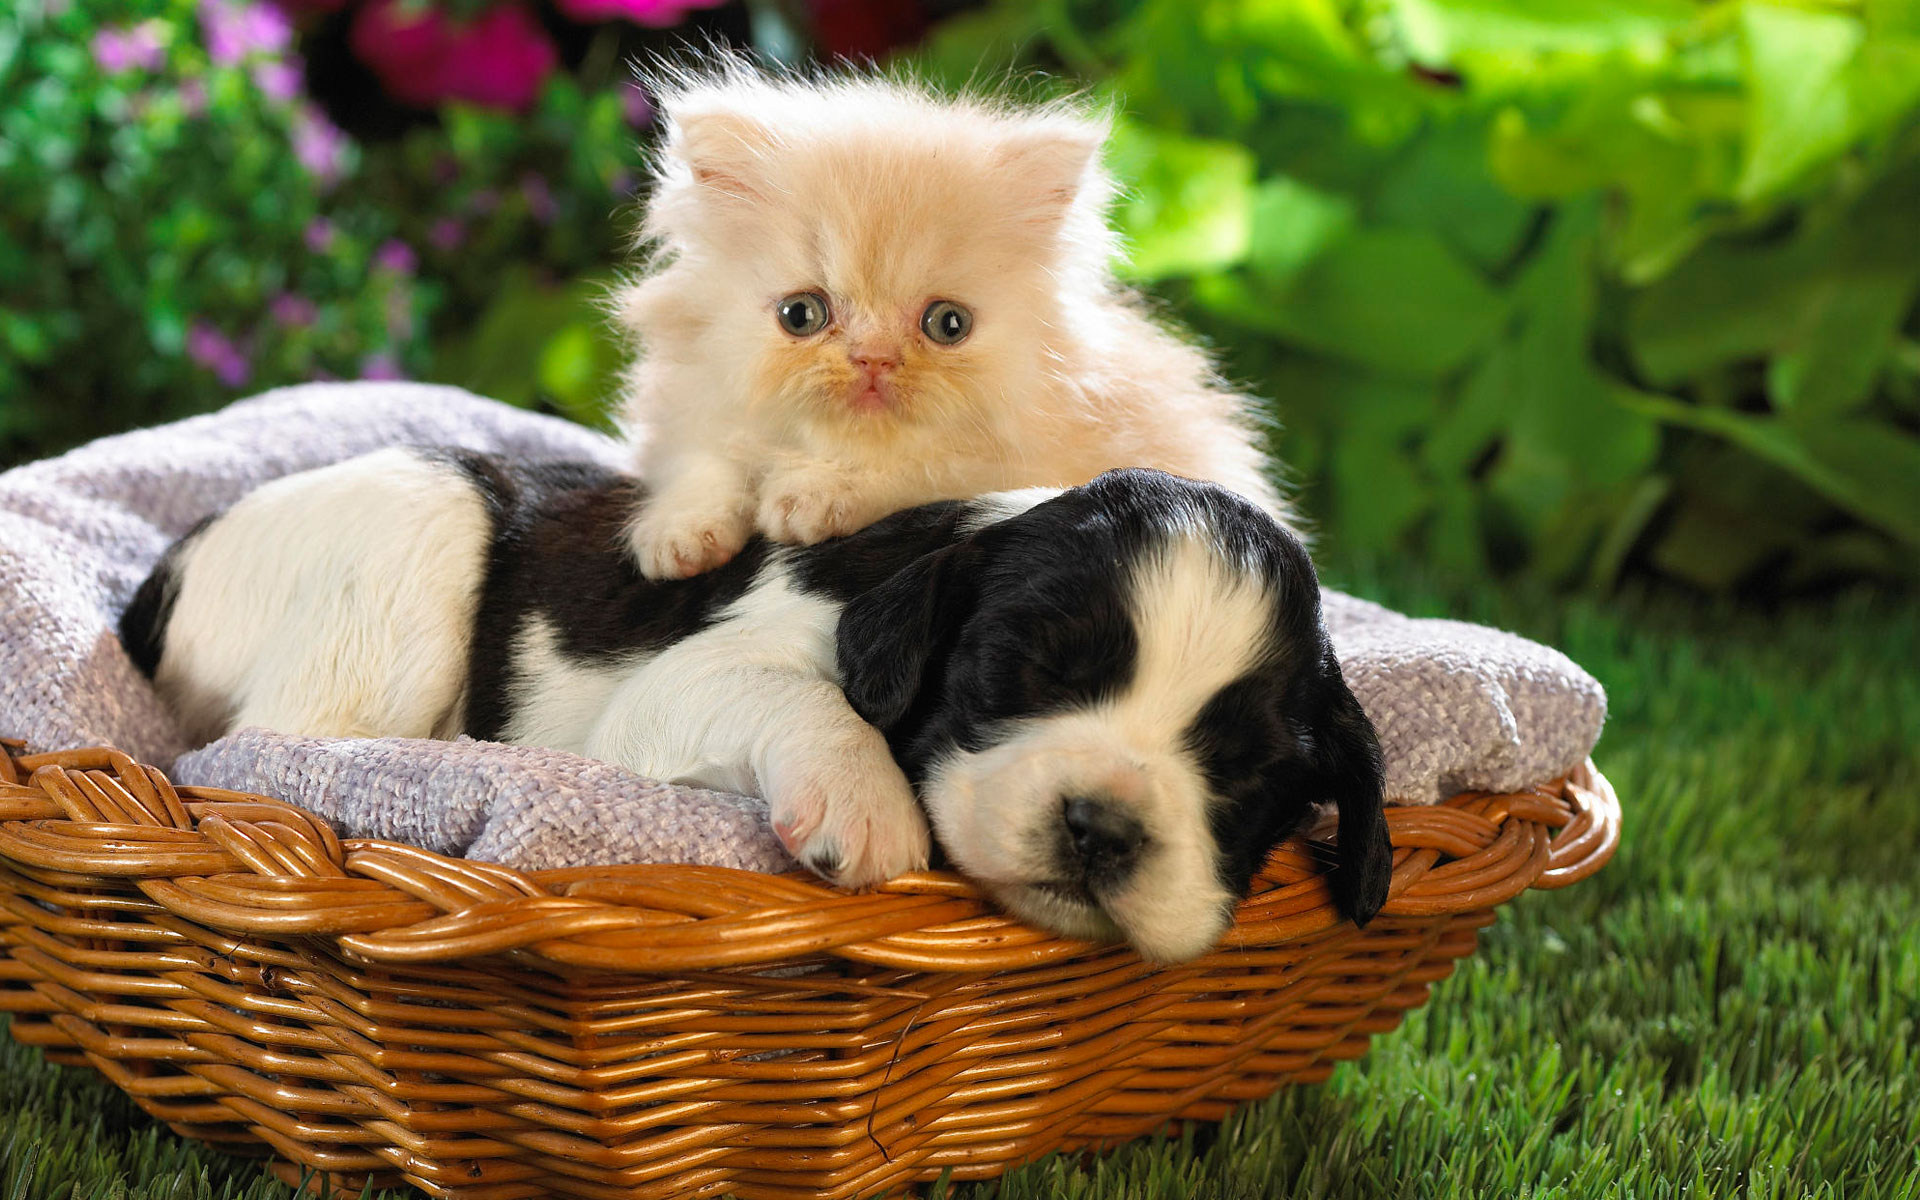 Animal Pictures Cute Puppy Wallpaper 1920x1200 Full HD Wallpapers 1920x1200